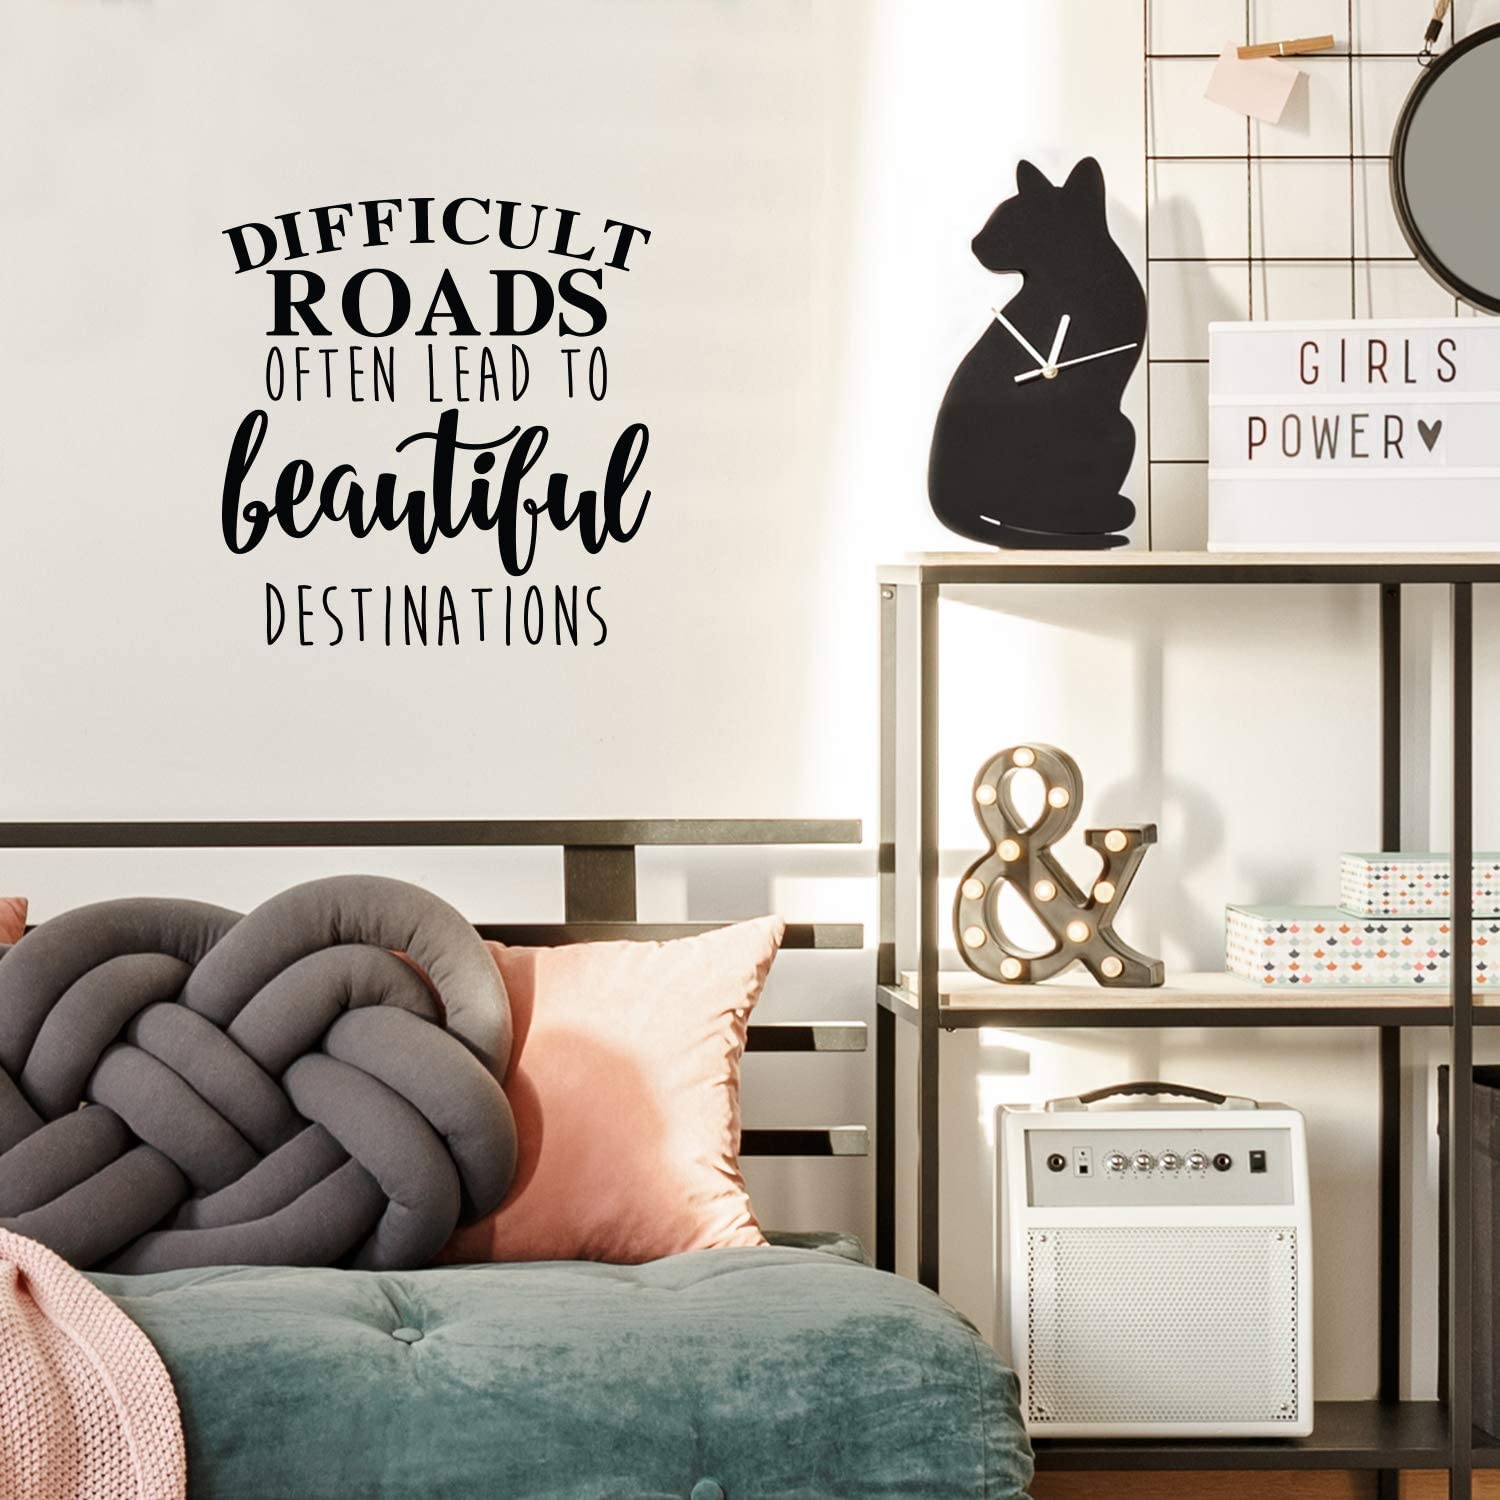 "Vinyl Wall Art Decal - Difficult Roads Often Lead to Beautiful Destinations - 23"" x 22"" - Cute Positive Inspirational Good Vibes Quote Sticker for Bedroom Living Room School Coffee Shop Decor (Black)"